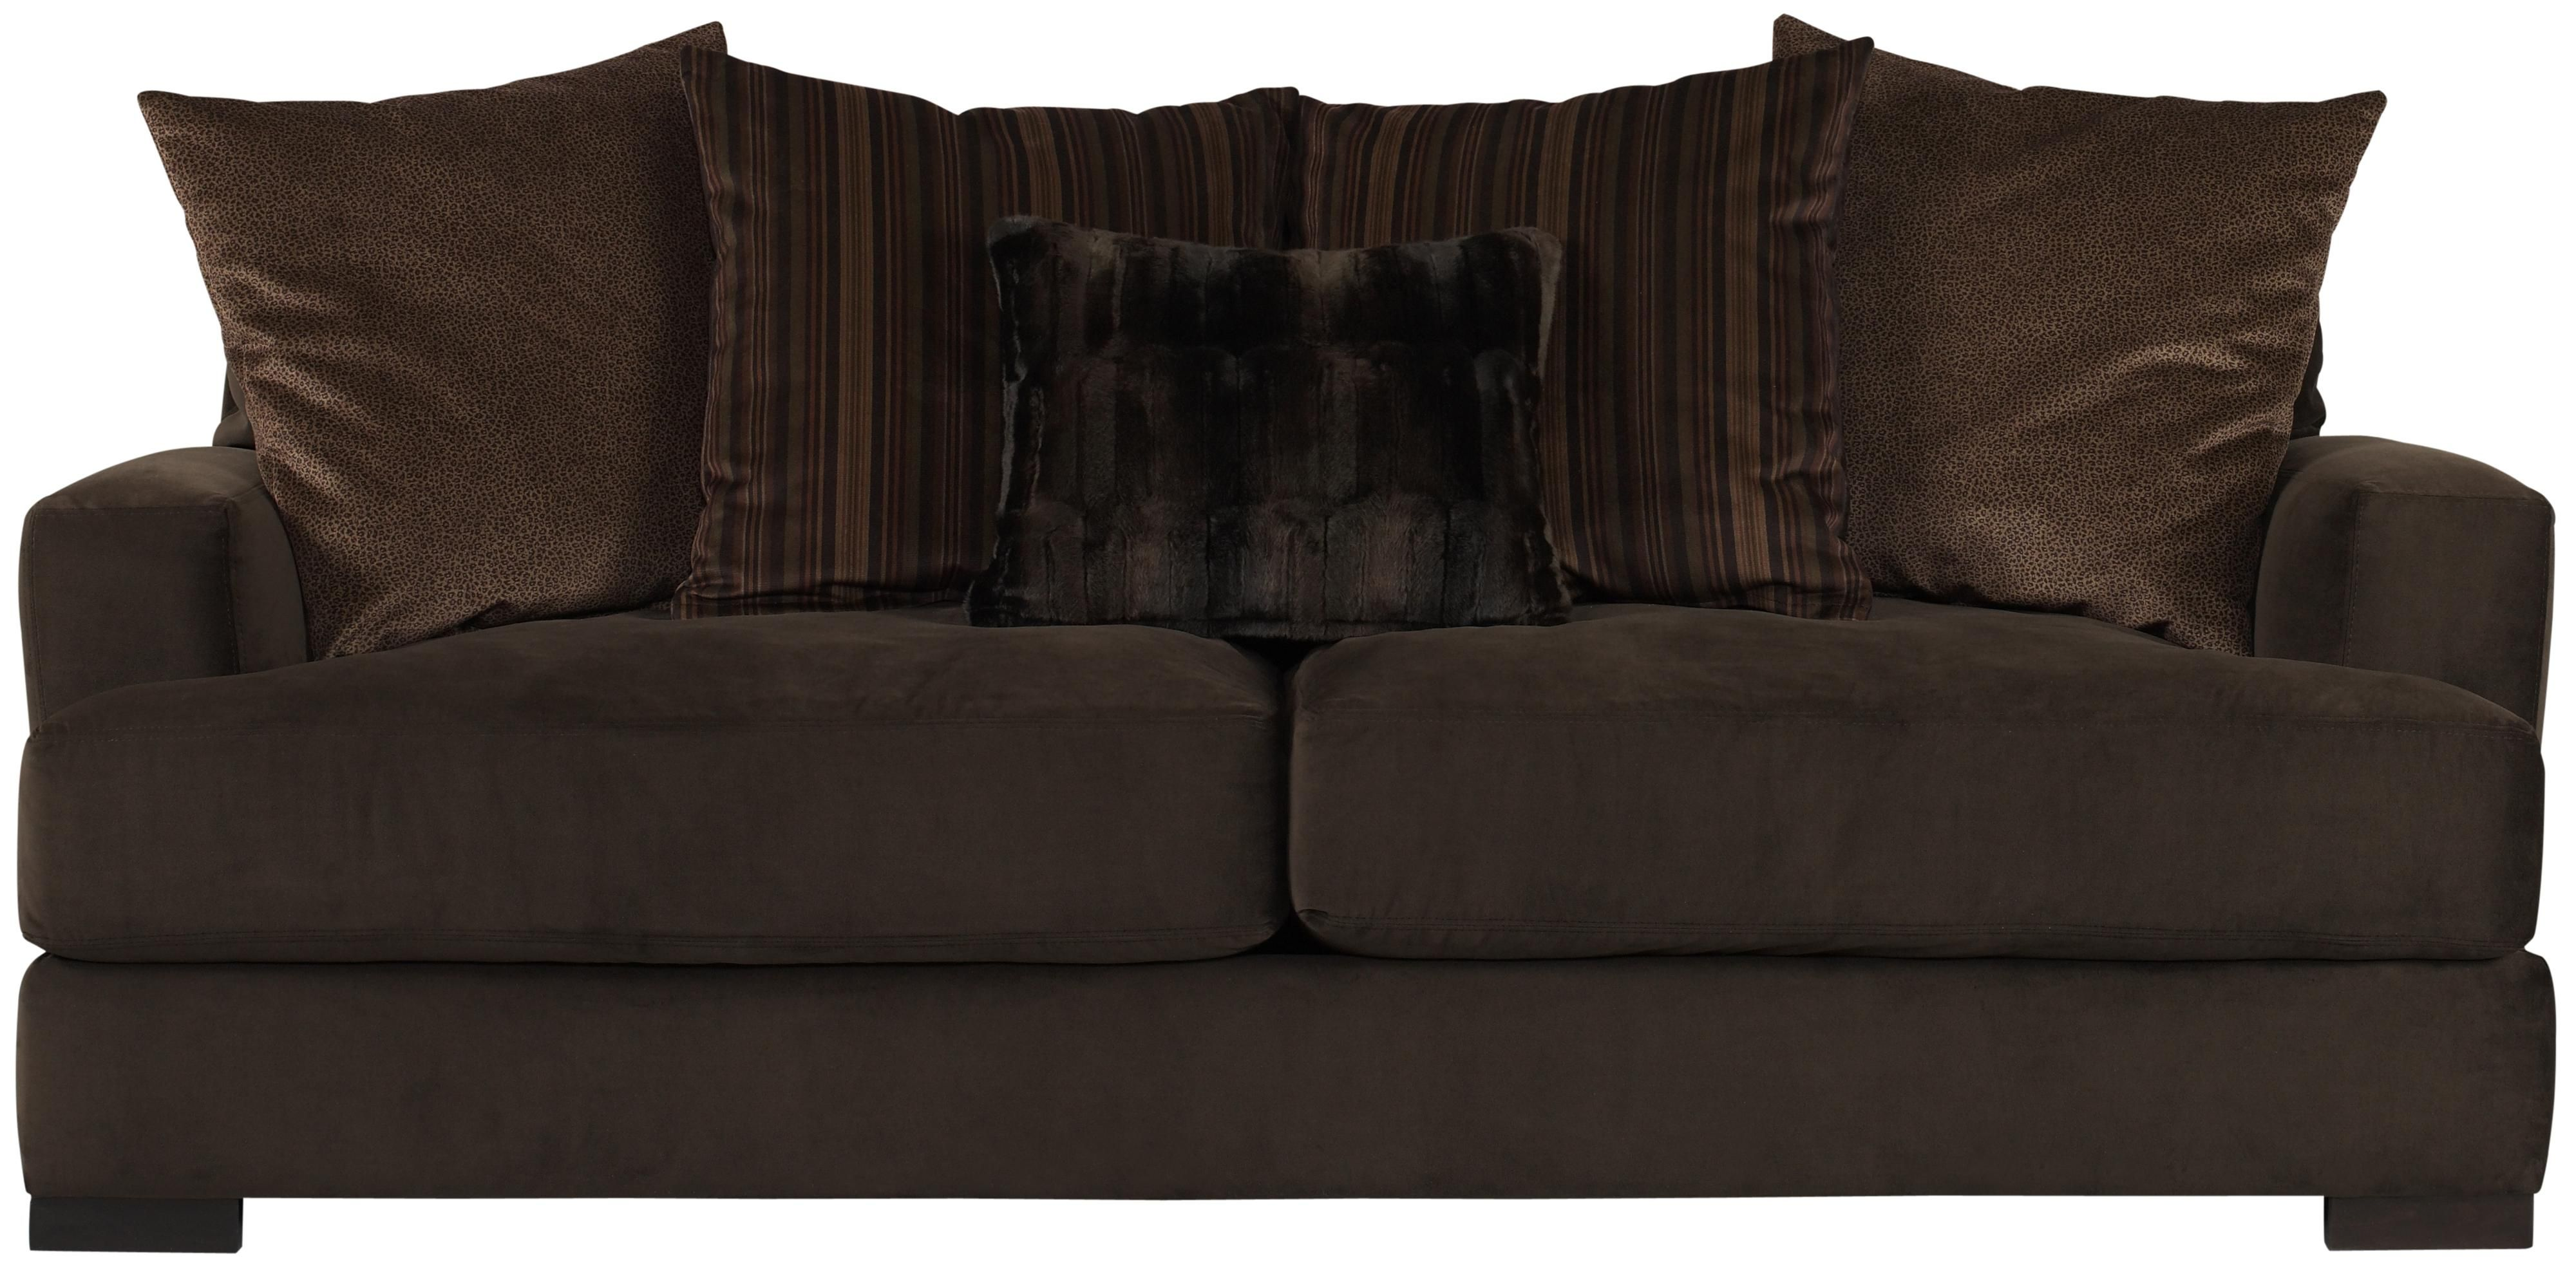 Carlin Sofa by Jonathan Louis Jonathan Louis